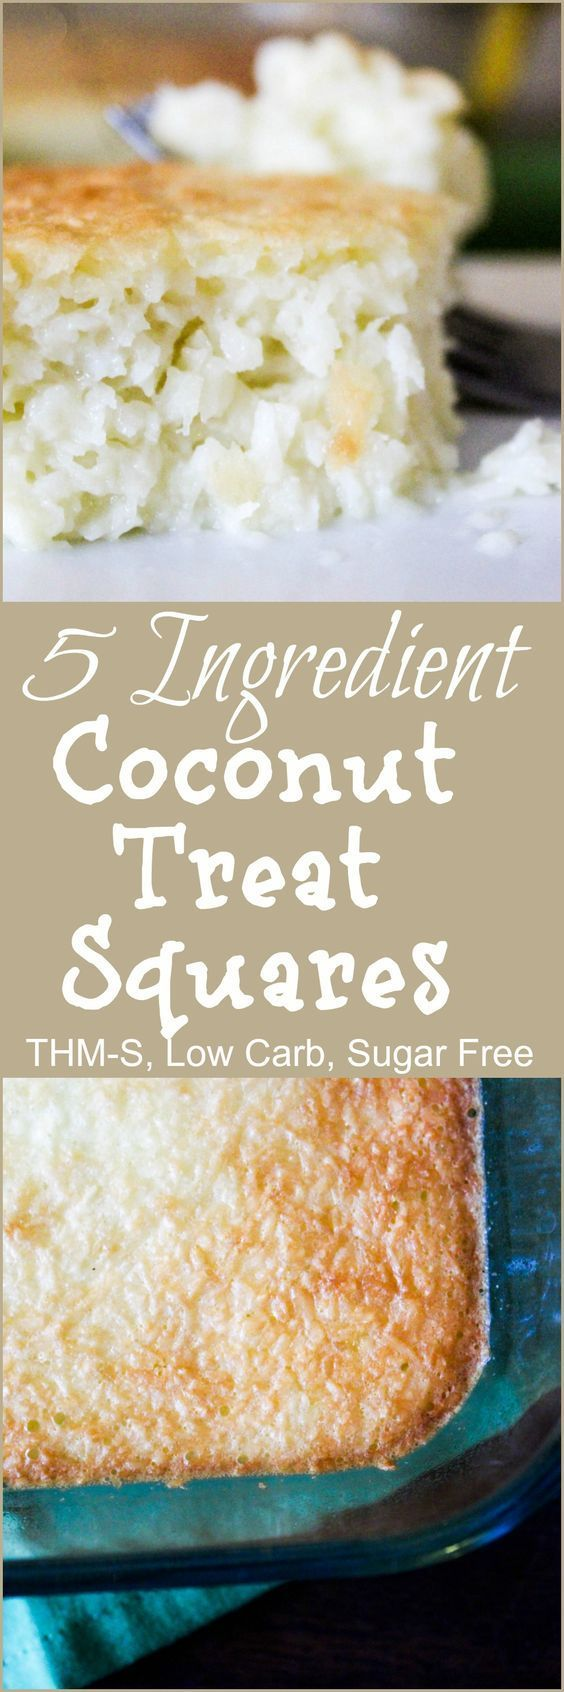 1 Cup Low Carb Sugar Free Coconut Milk Sweetened Condensed Milk, 3 Eggs, 1 C Canned Unsweetened Coconut Milk, 1/3 C Truvia, 2 C Shredded Unsweetened Coconut In a mixing bowl, combine all. Bake at 350 for 30-45 minutes, until top is golden & center is not jiggly. Refrigerate.